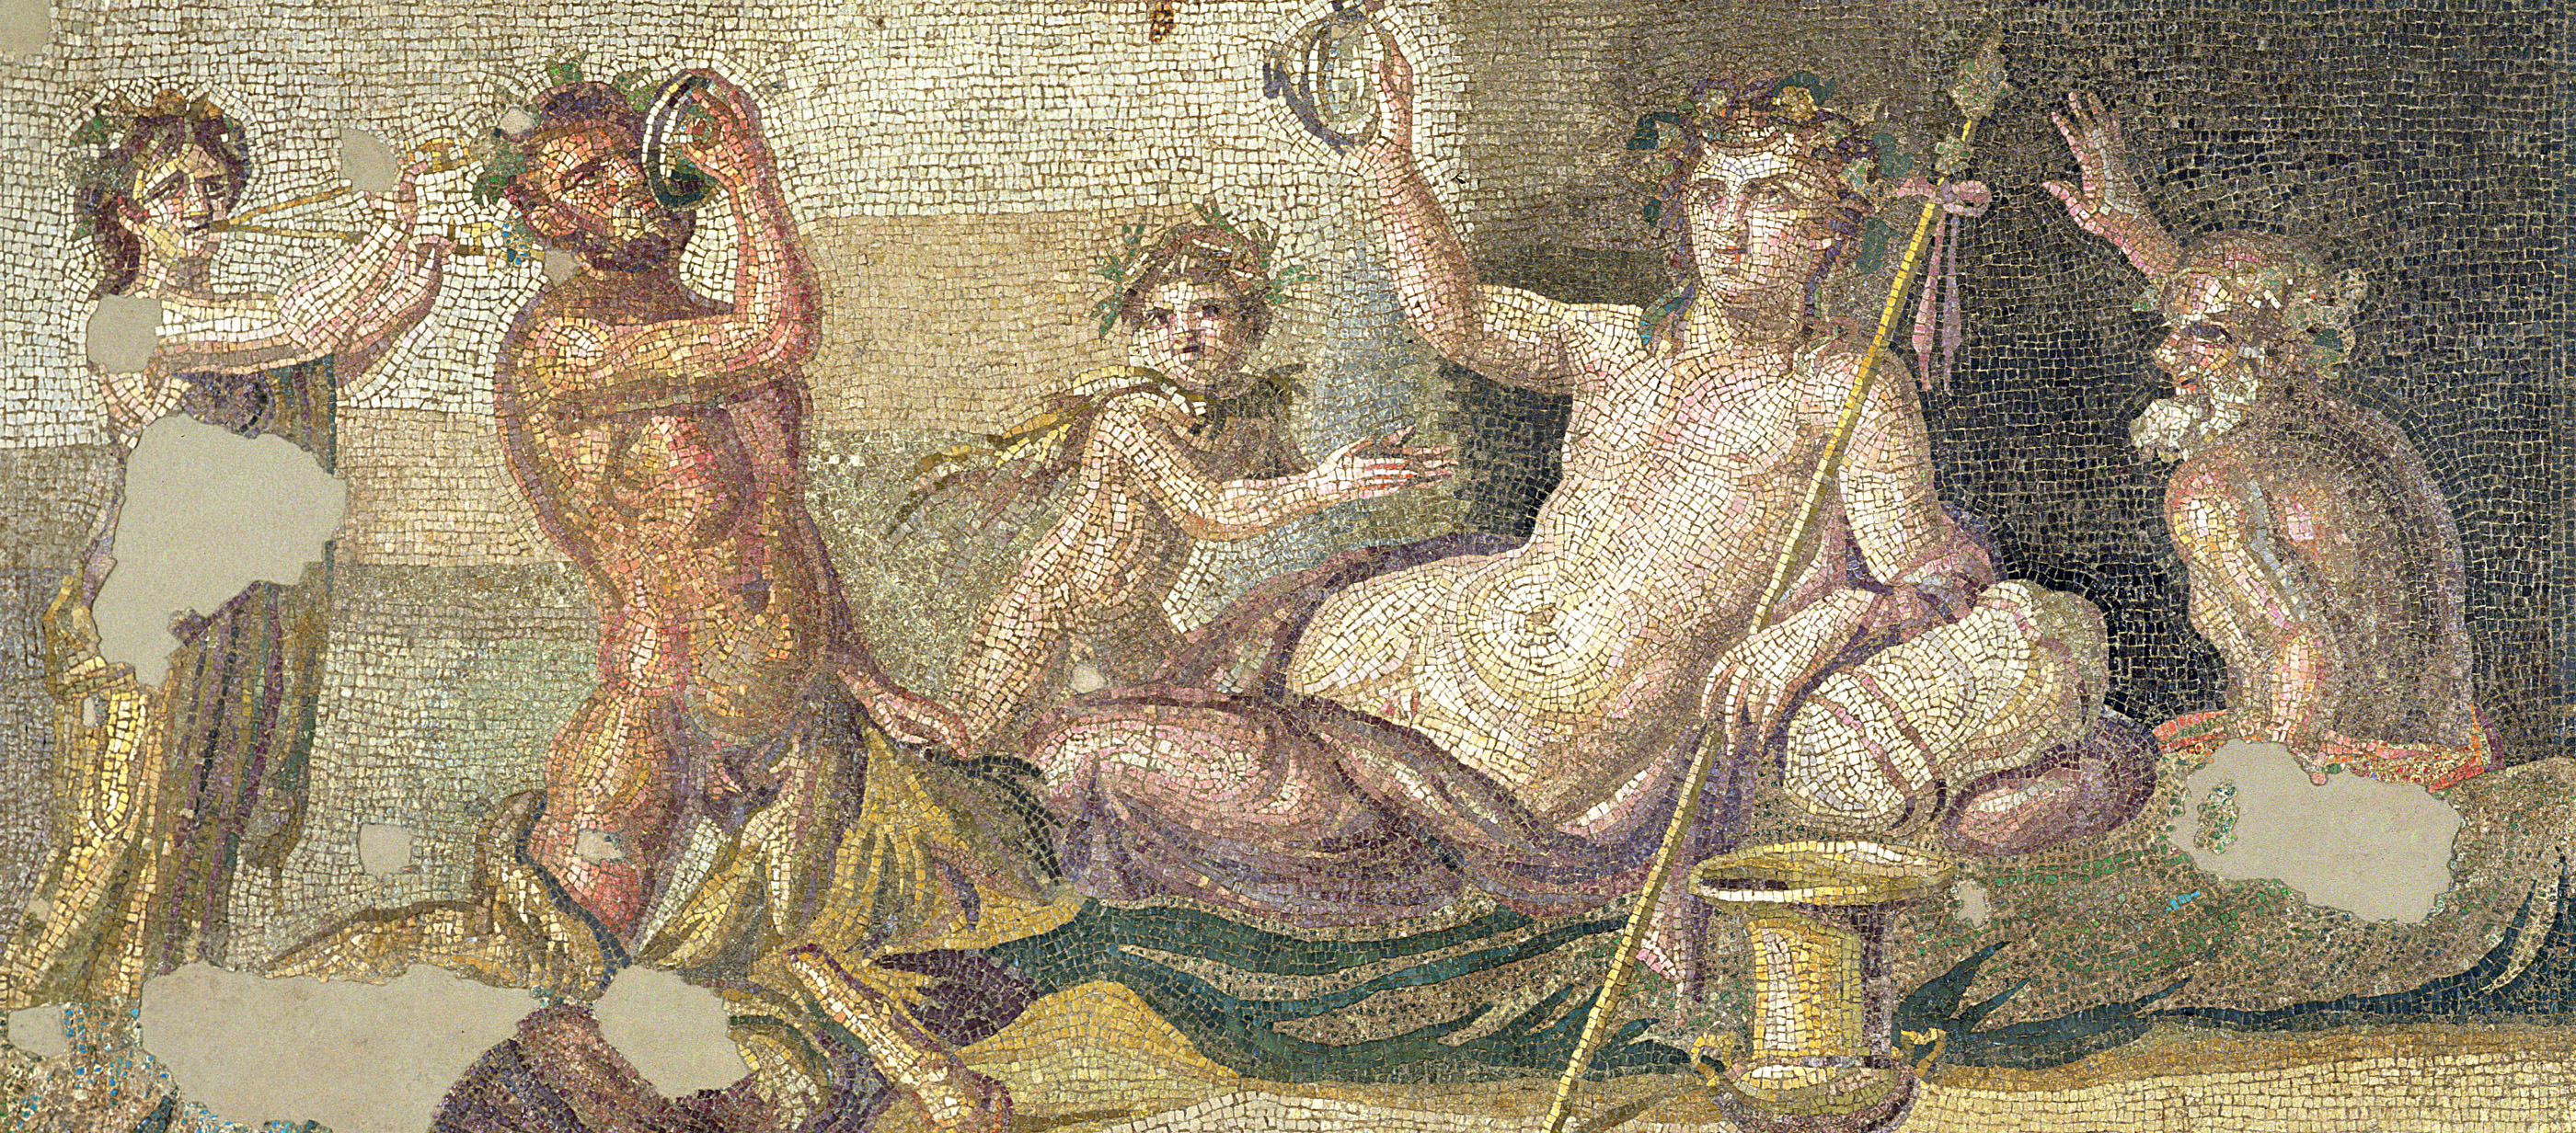 Drinking contest between Dionysos and Heracles